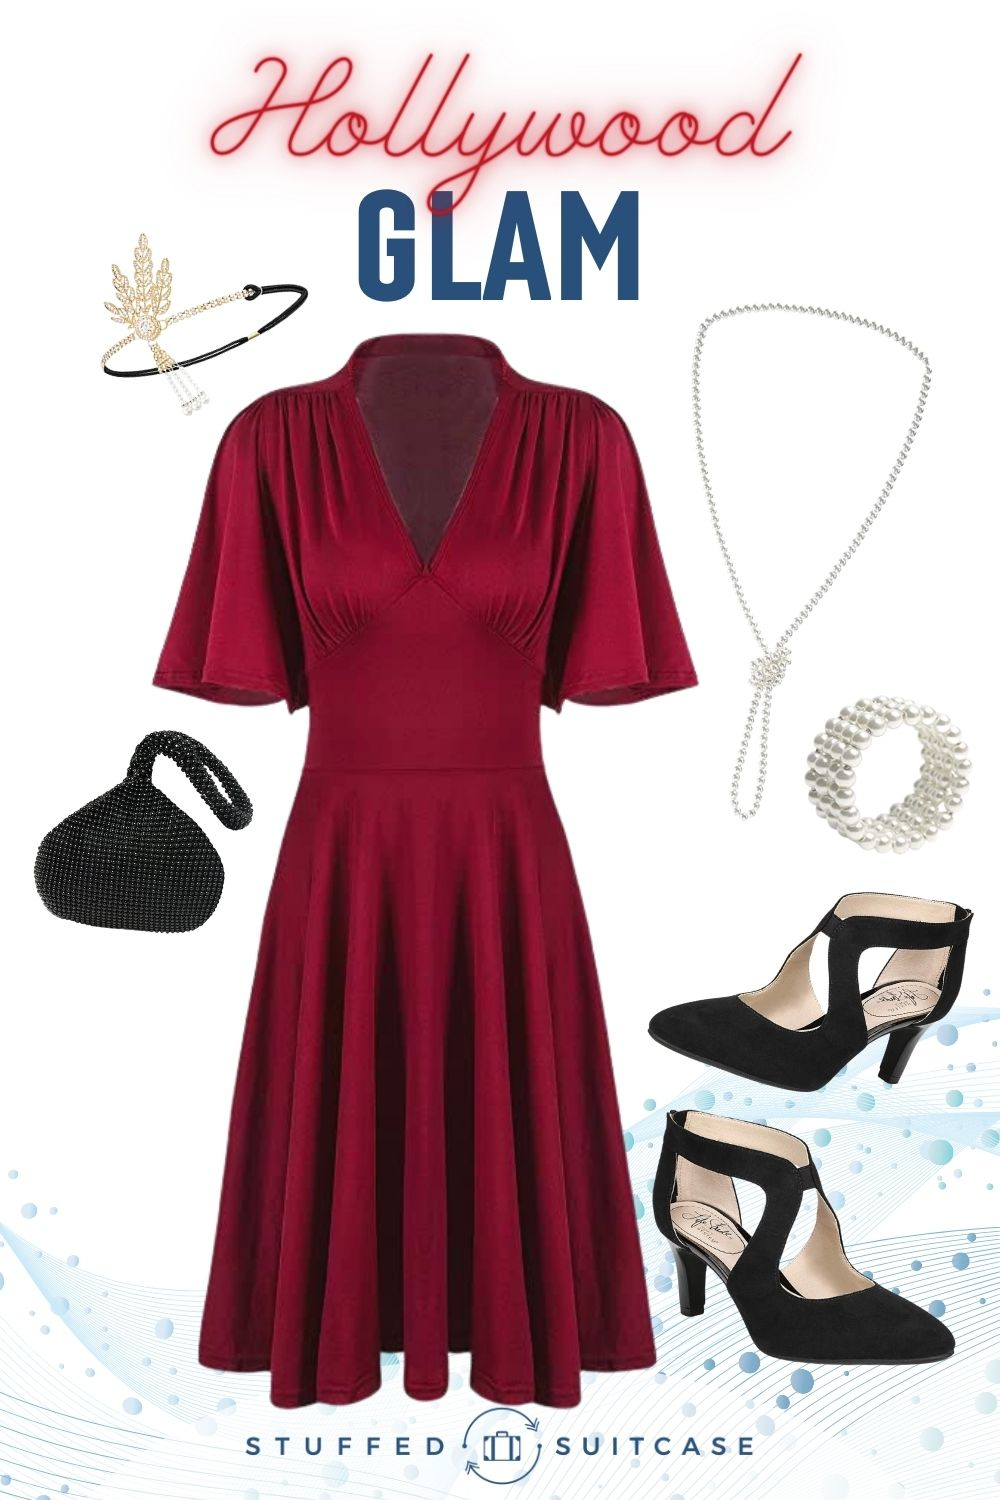 hollywood glam outfit collage red dress black shoes and pearl accessories